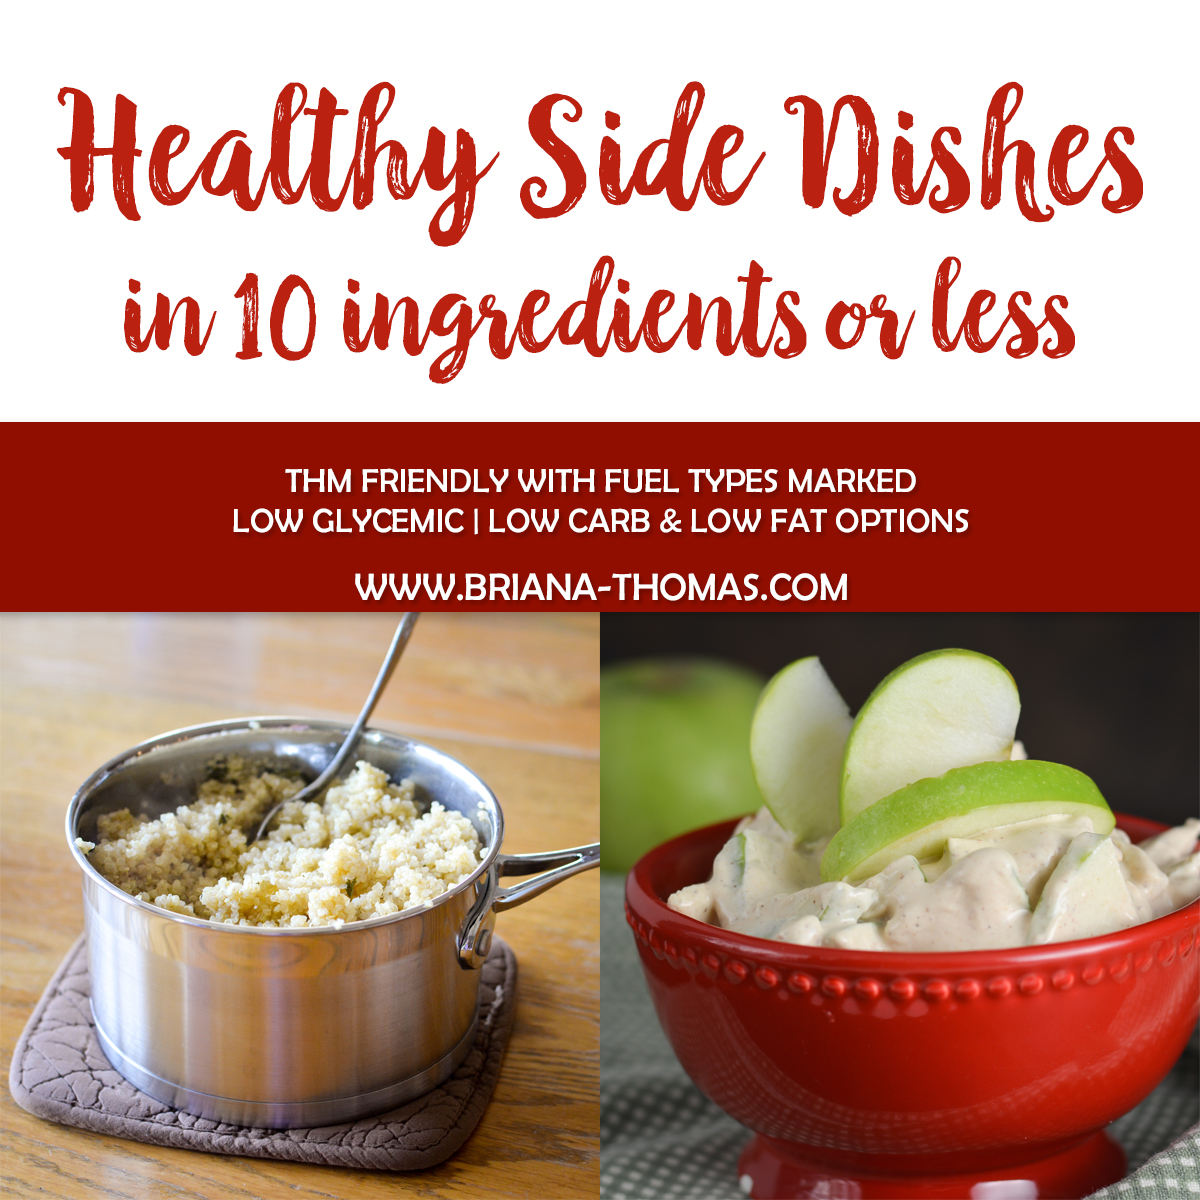 Check out this post for a big list of THM-friendly healthy side dishes in 10 ingredients or less to make supper prep a snap! Fuel types marked.